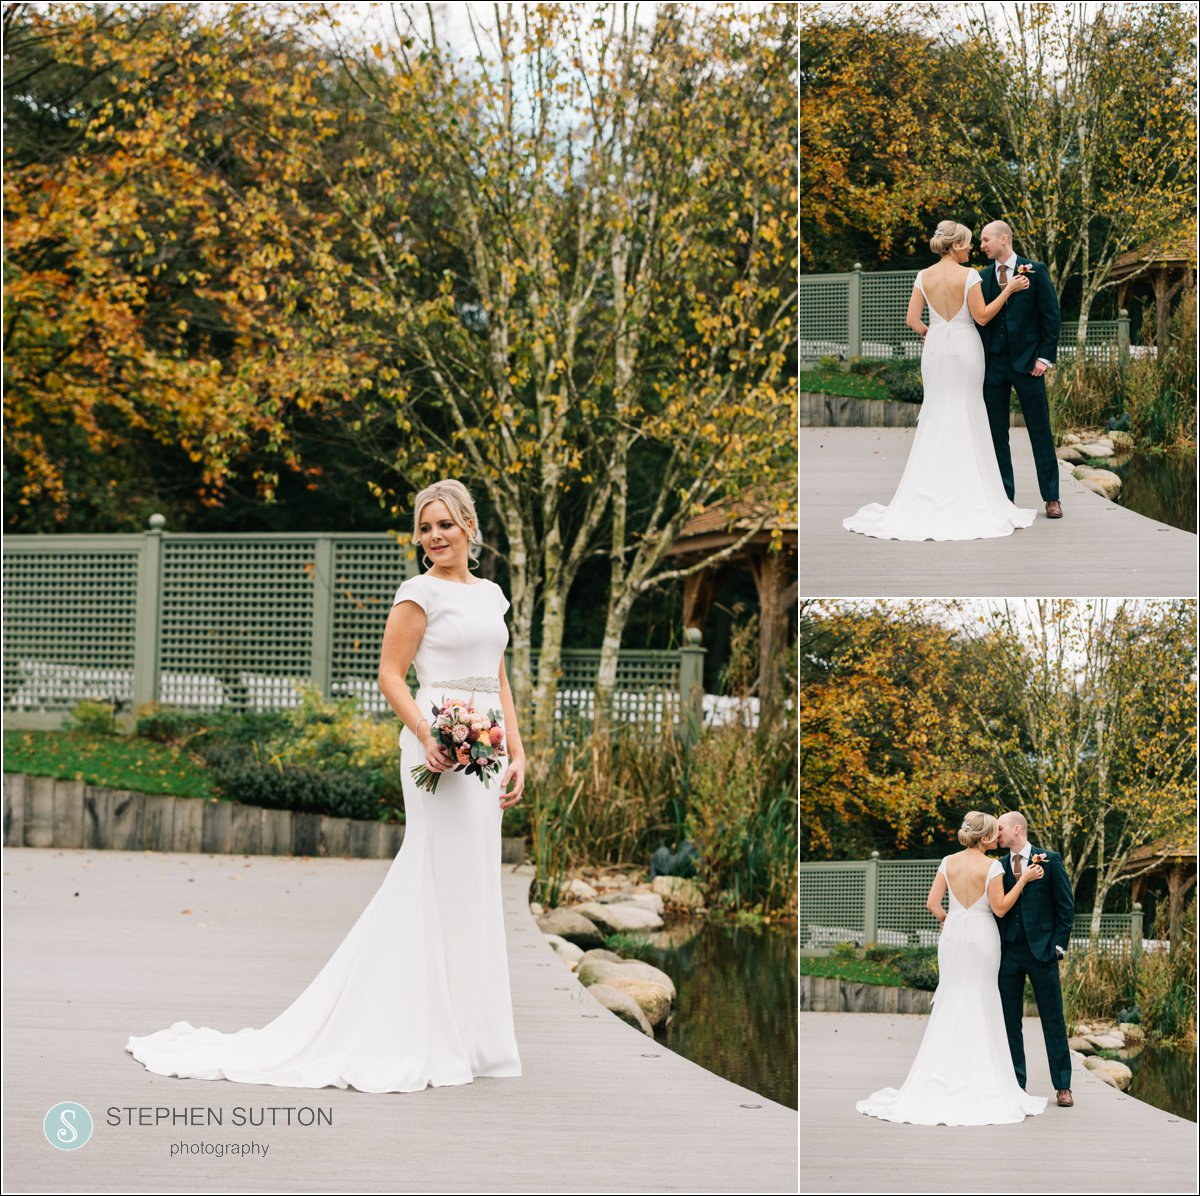 wedding photographer moddershall oaks